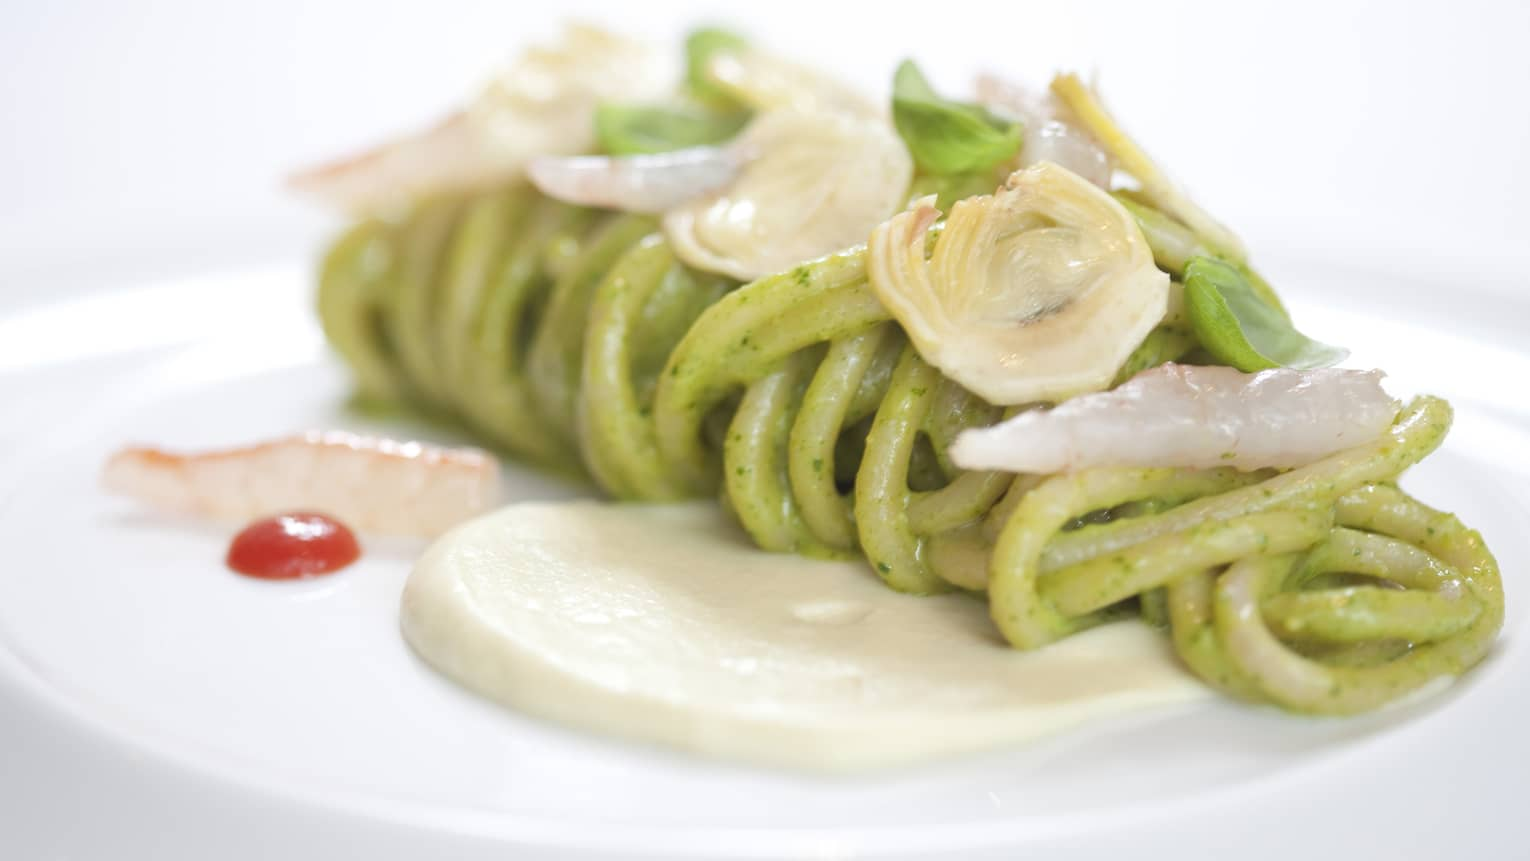 Pesto pasta with prawn tails and artichoke hearts, garnished with white sauce and basil leaves